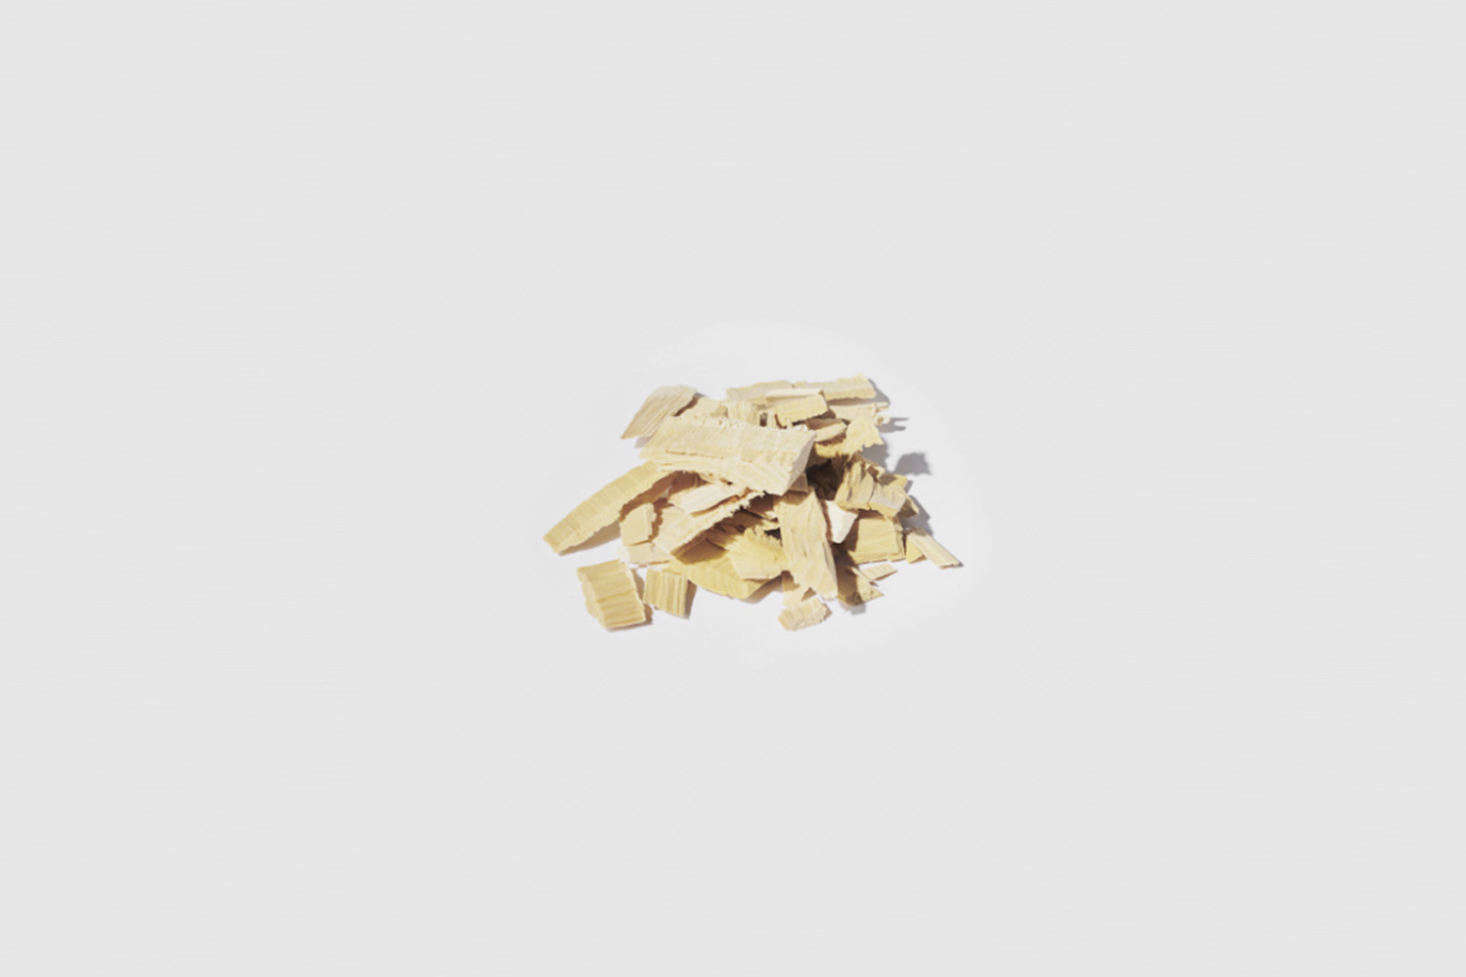 Sourced by Officine Universelle Buly à Paris, the Aomori Hiba Wood is harvested from a Japanese Cypress and although it has a sweet and gentle scent, it also has germicidal, sanitizing, and deodorizing properties; €.67 for 0 grams.